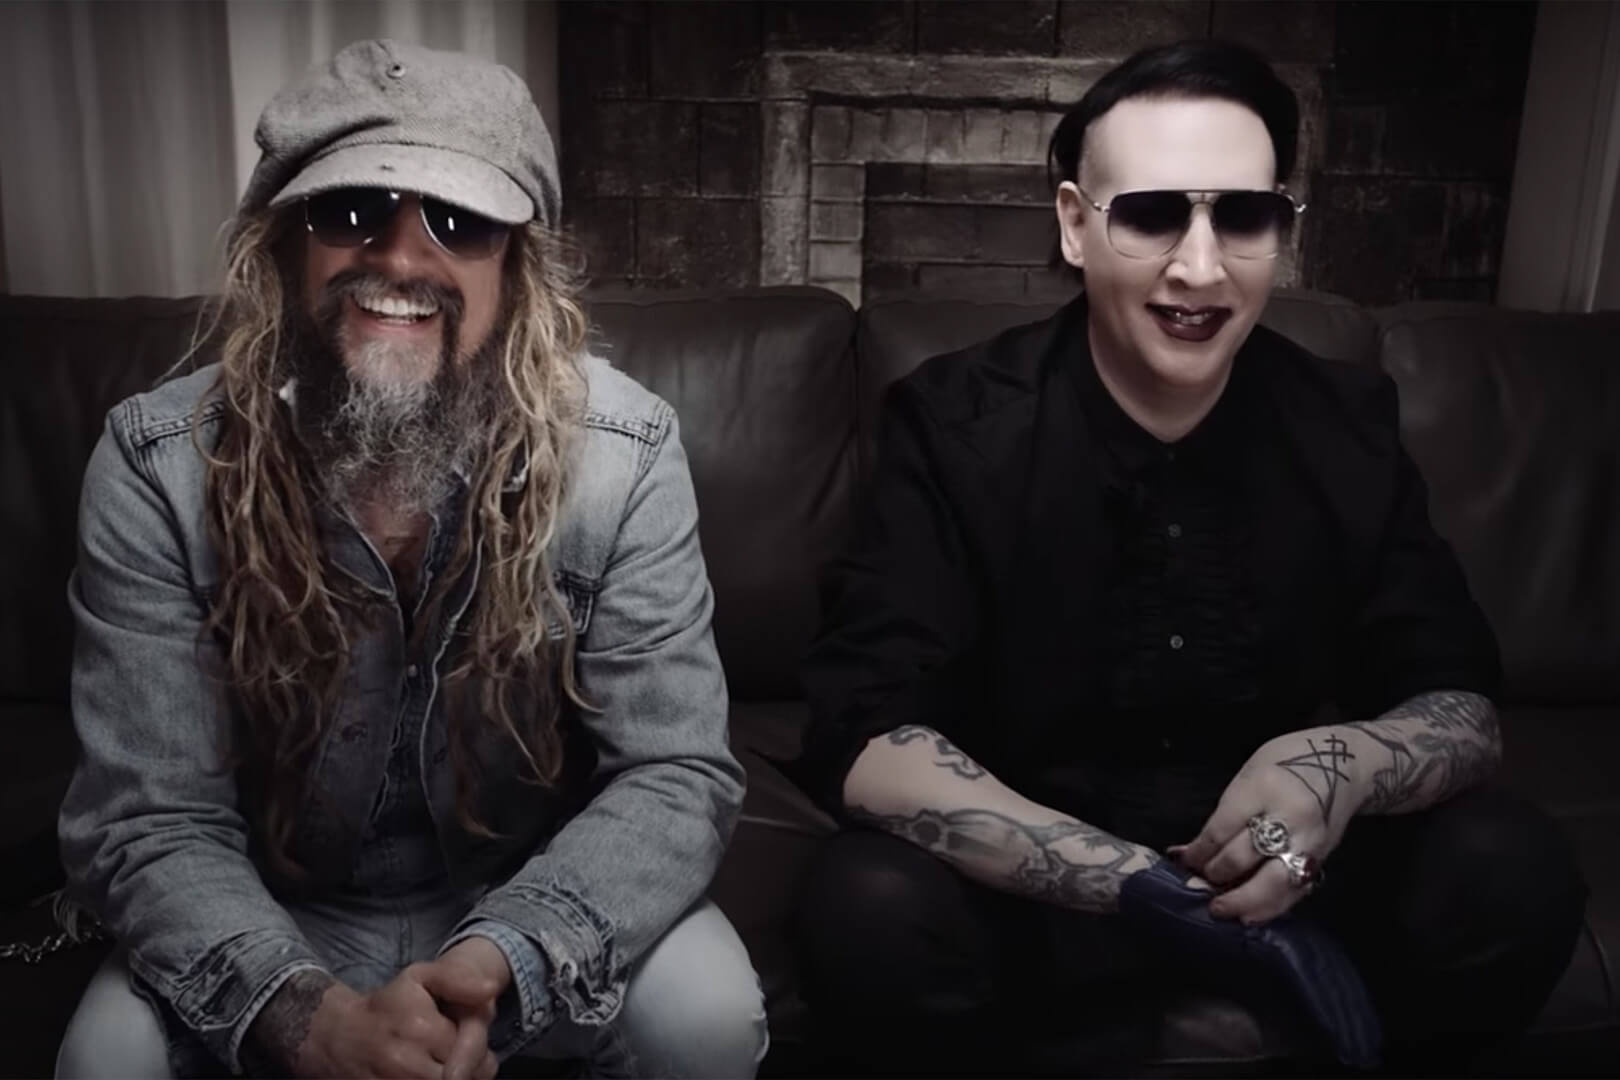 Rob Zombie and Marylin Manson